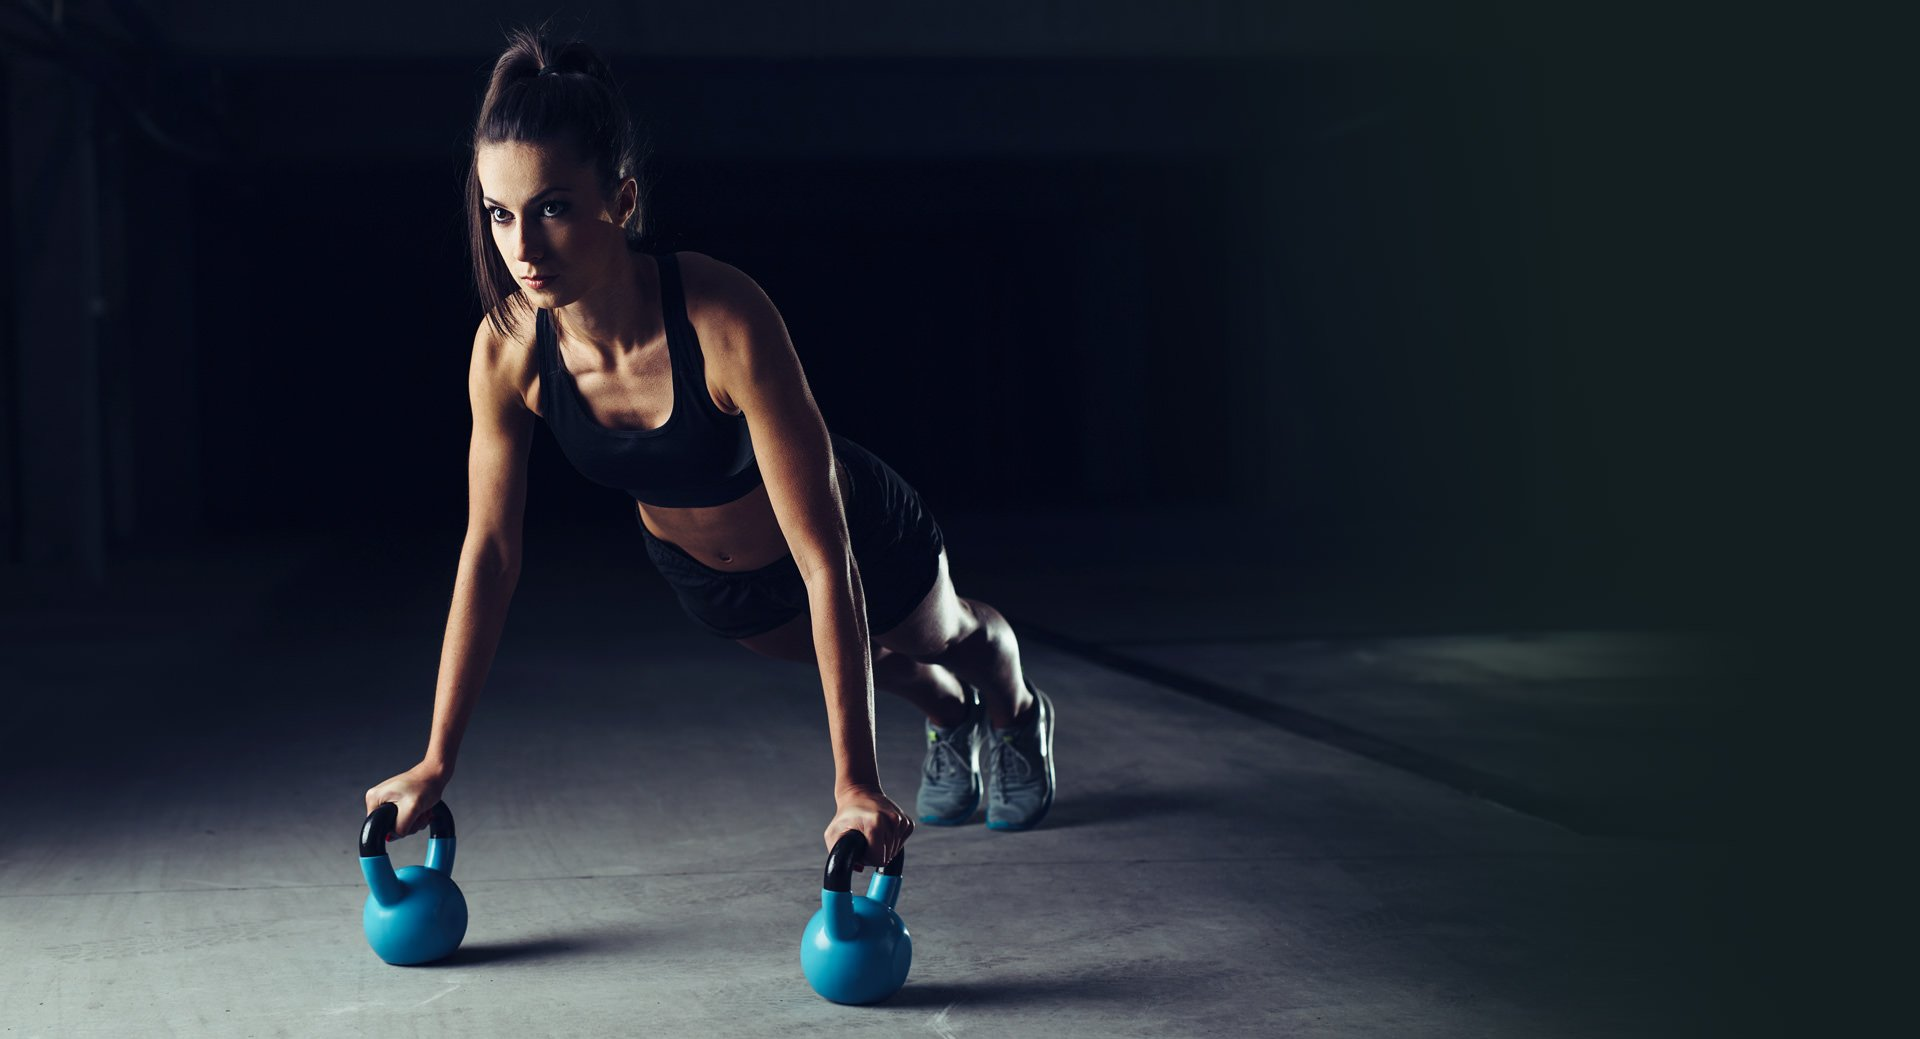 woman performing push ups using kettlebells